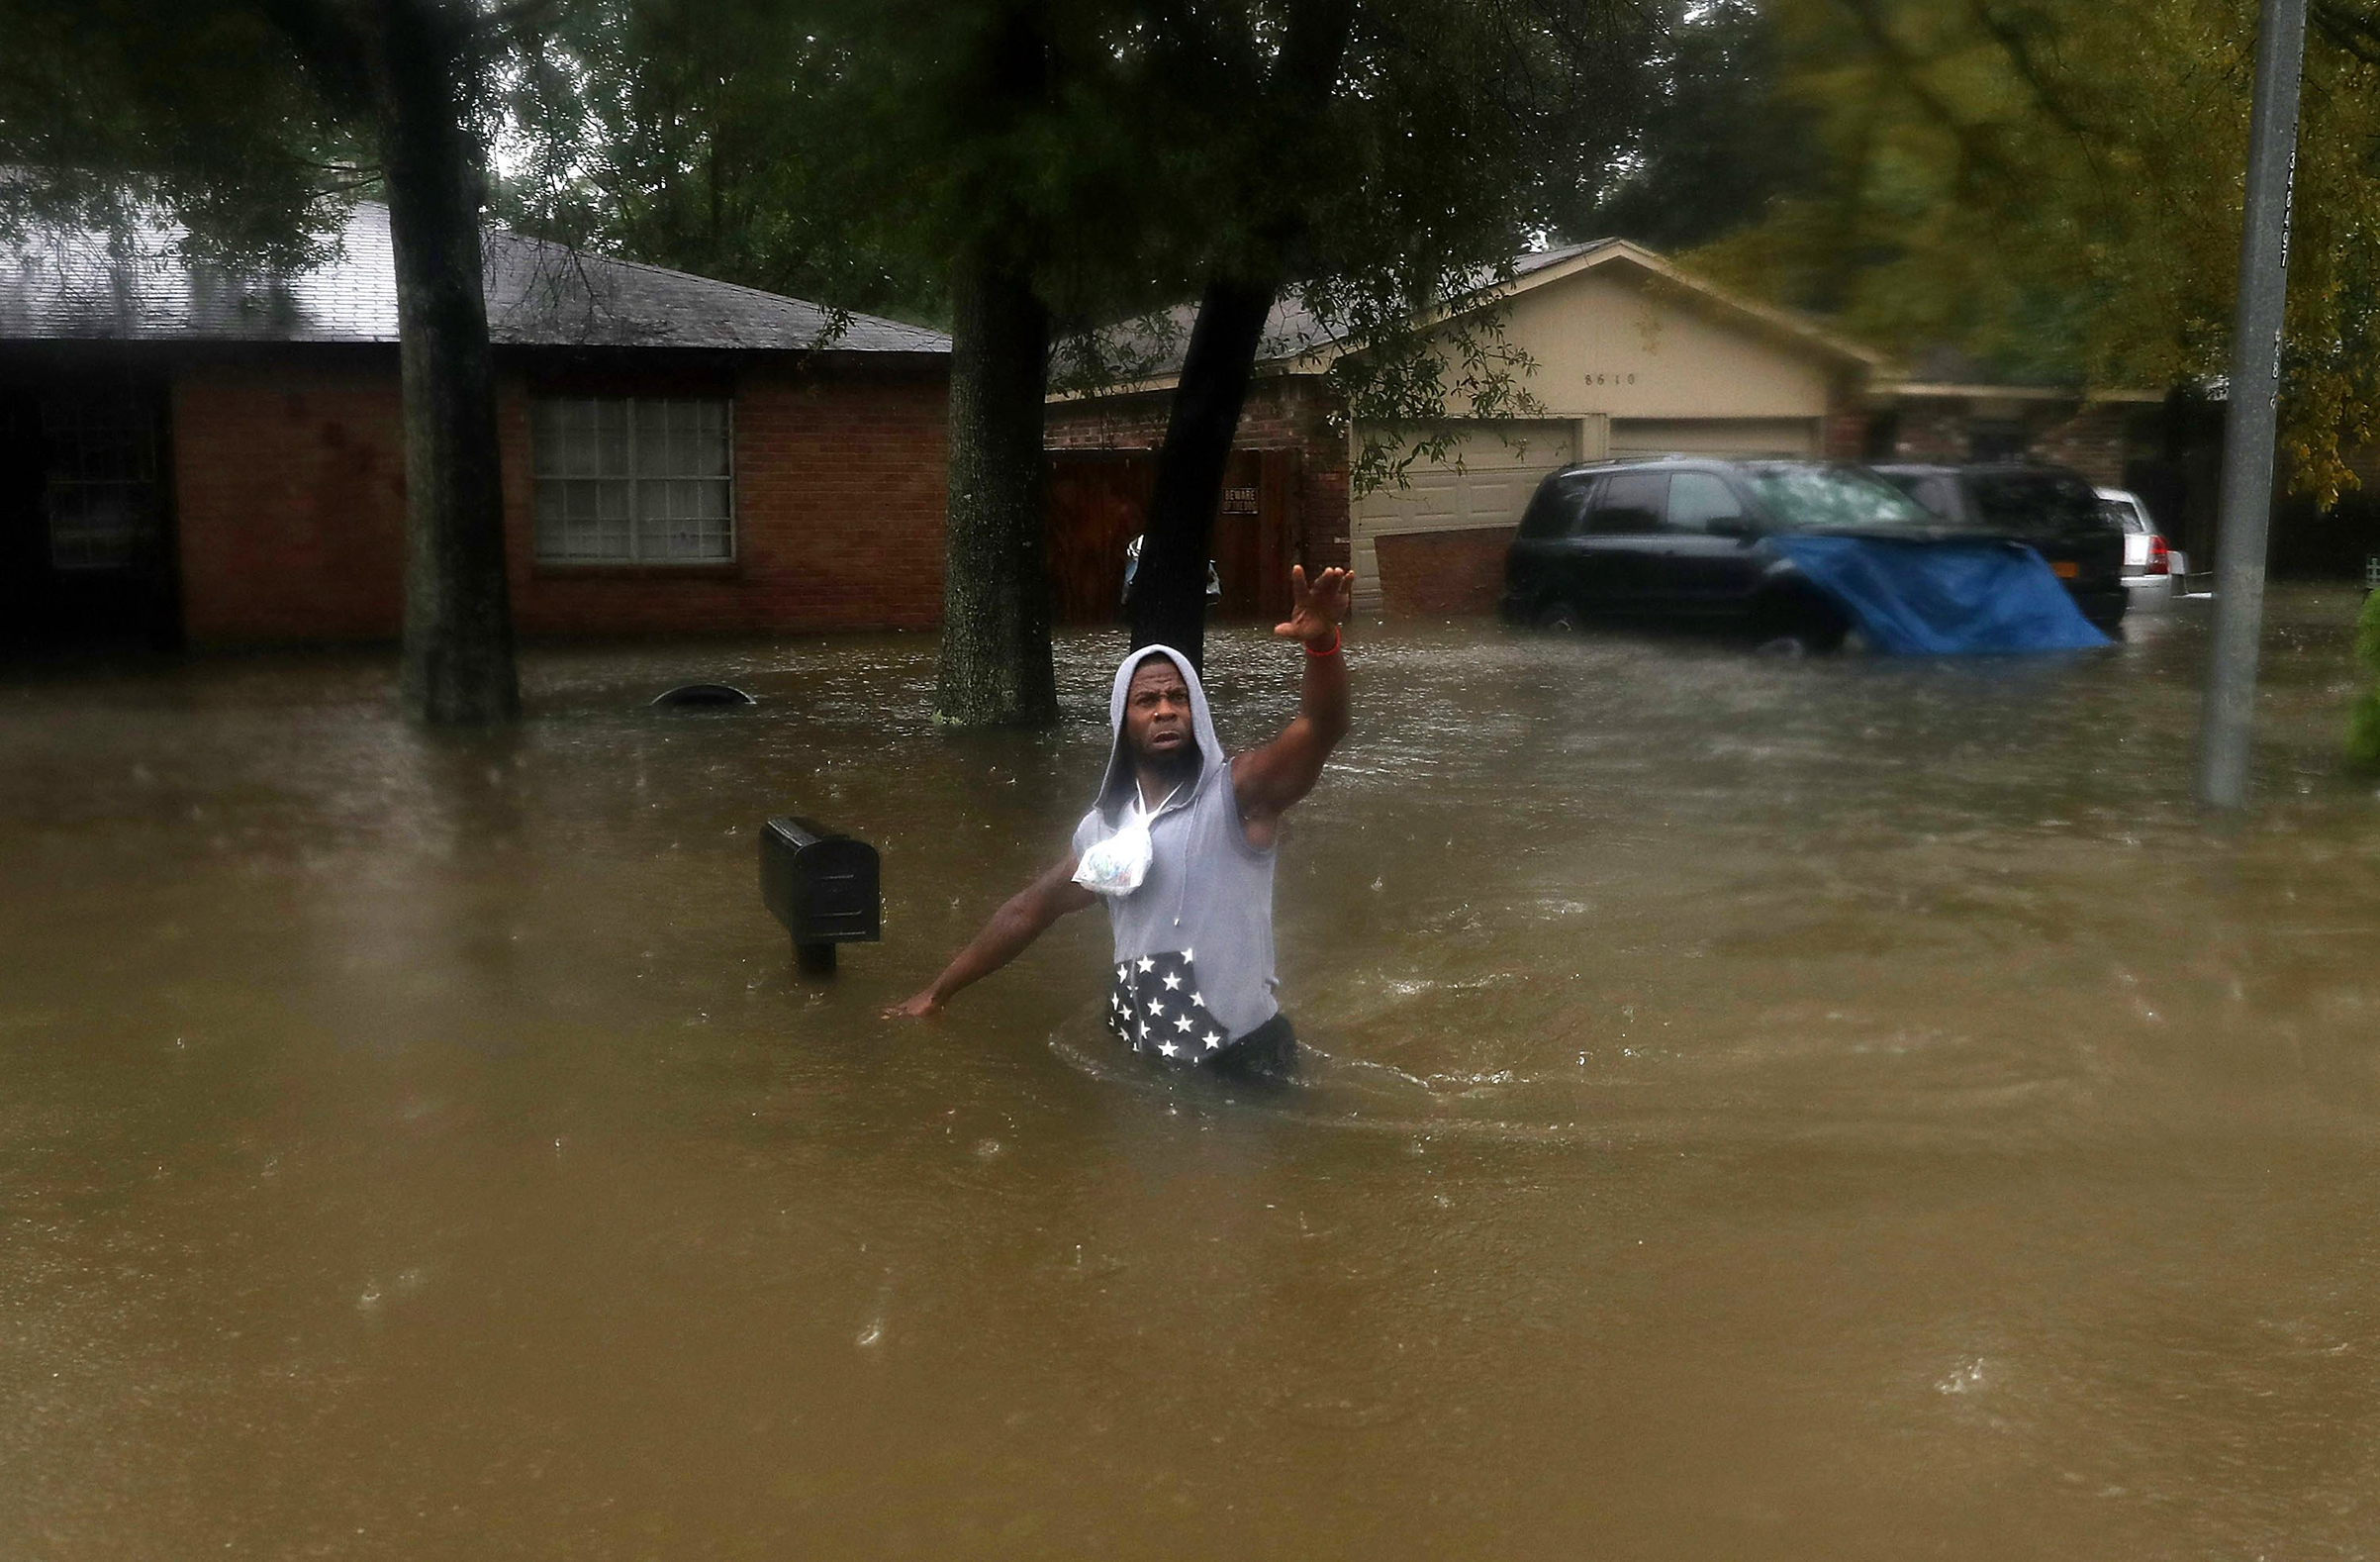 A person waves to rescuers as he walks through a flooded street after the area was inundated with flooding from Hurricane Harvey on Aug. 28, 2017 in Houston.